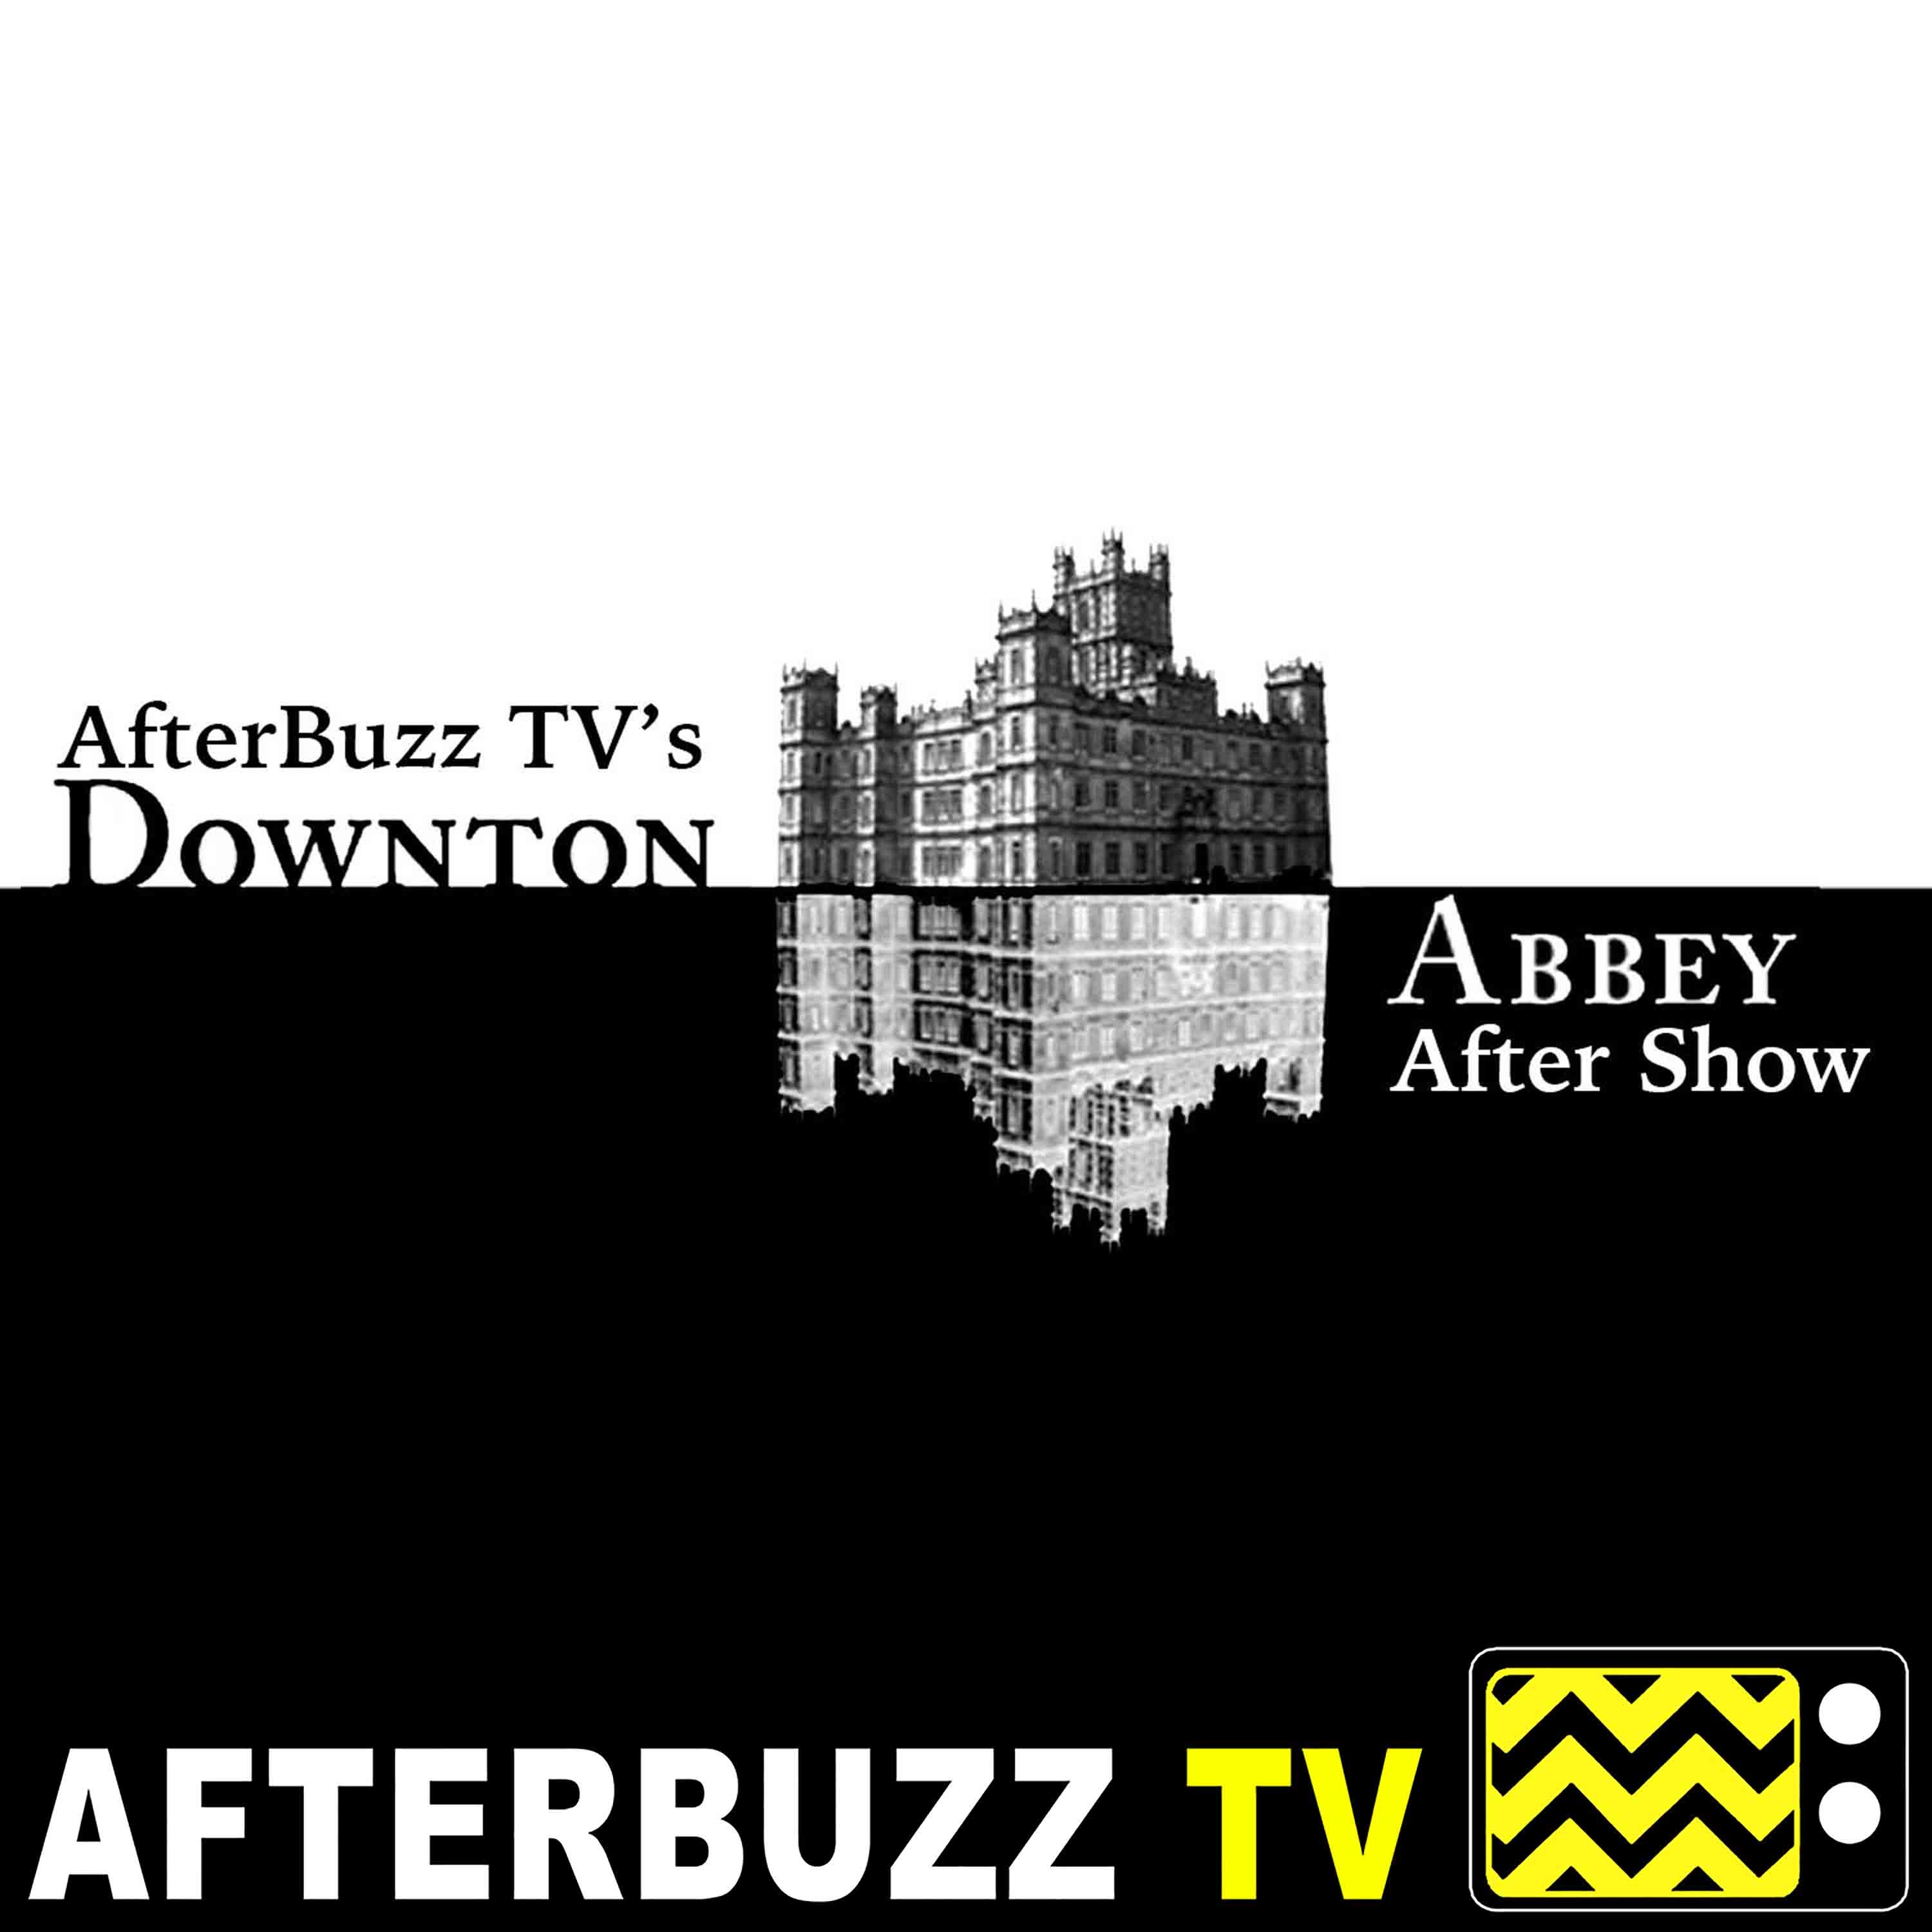 Downton Abbey UK S:6 | Episode 2 | AfterBuzz TV AfterShow